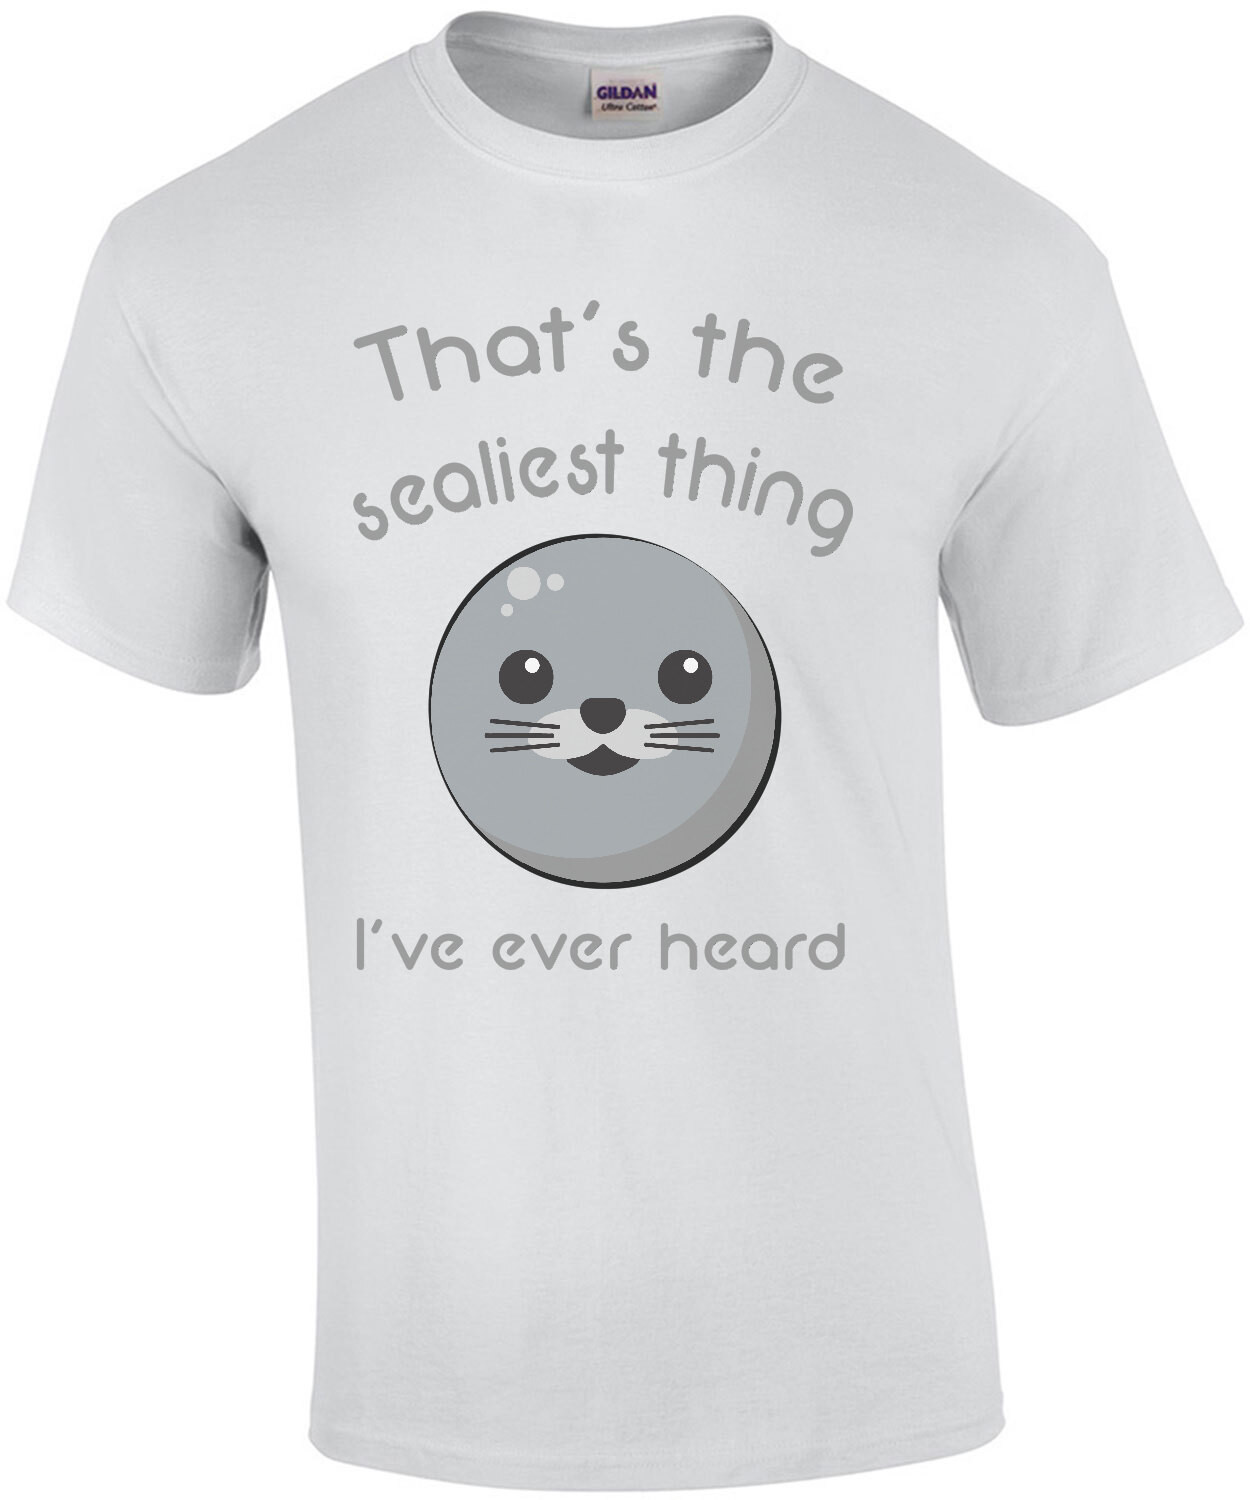 That's the sealiest thing I've ever heard - funny pun t-shirt